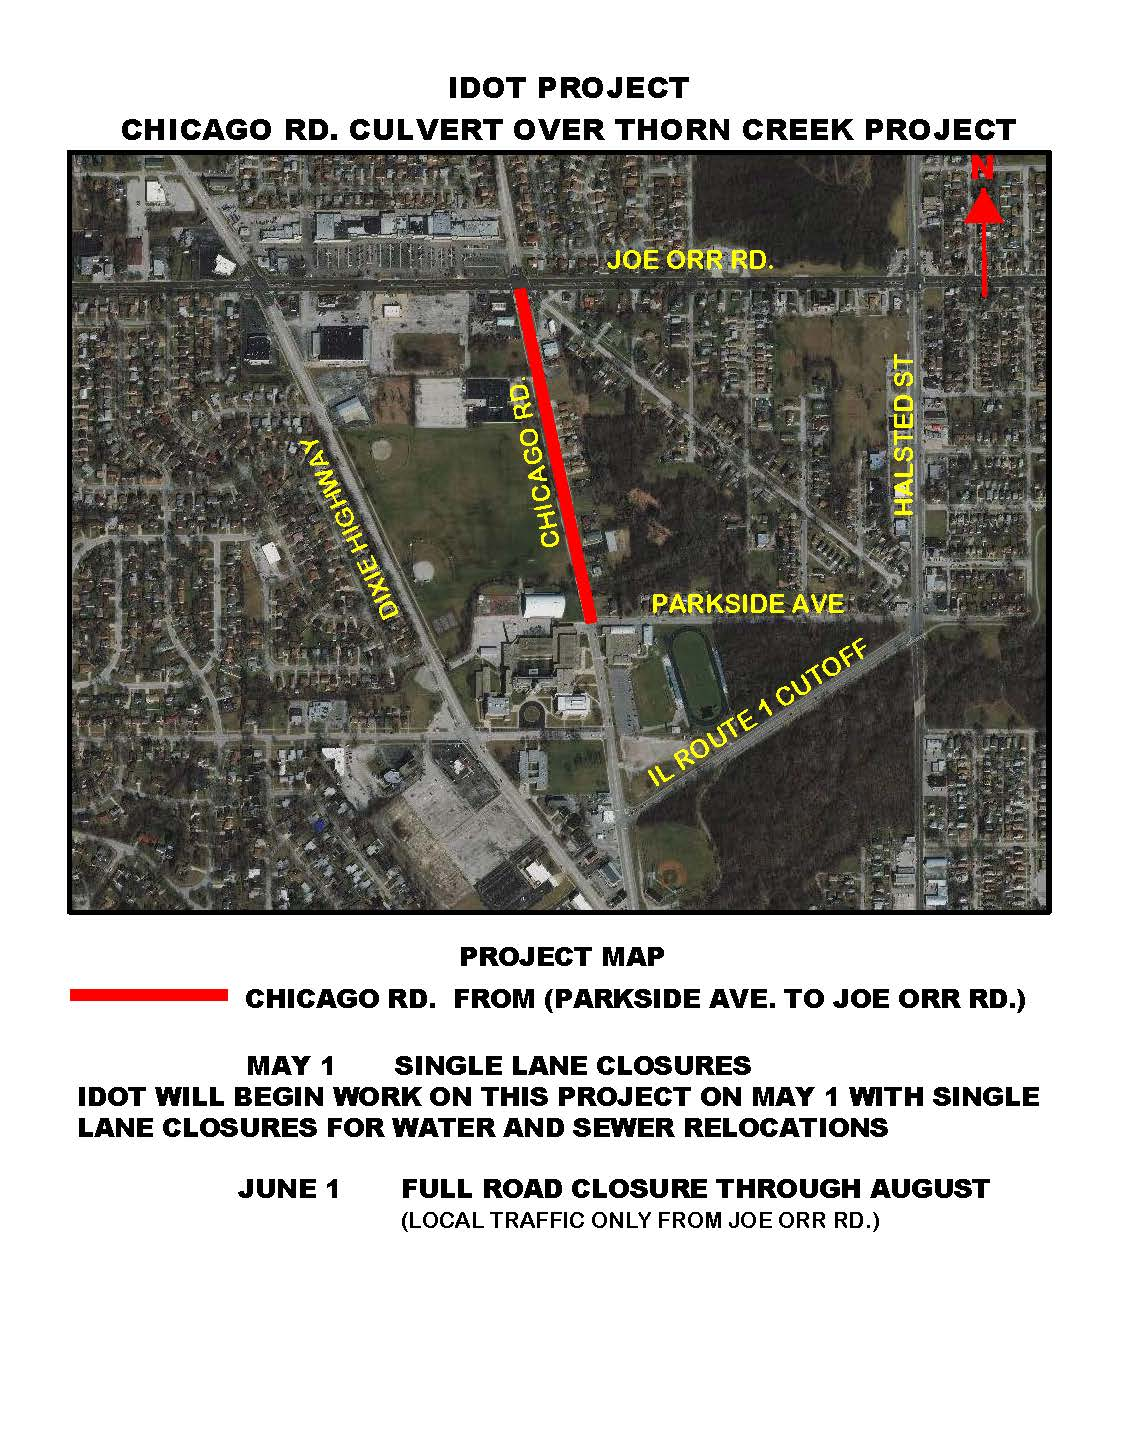 IDOT - THORN CREEK CULVERT PROJECT MAP